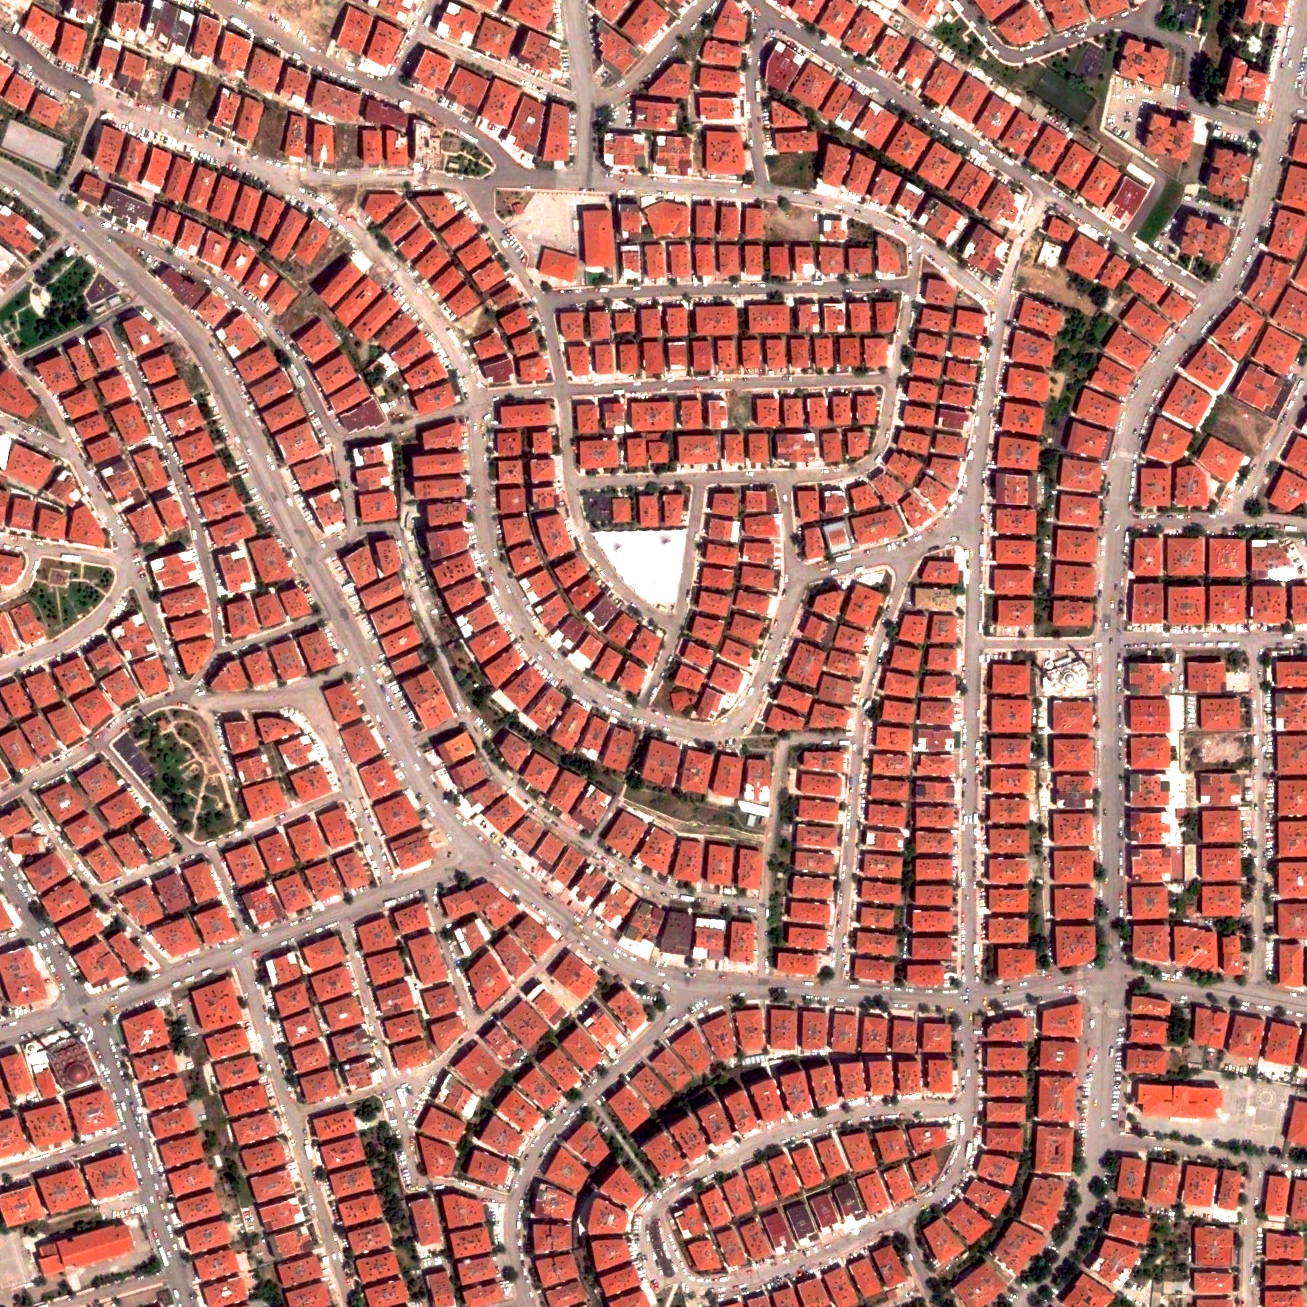 4/25/2015  Residential house  Ankara, Turkey  39.987497075°, 32.850163076°    Ankara, Turkey is home to more than five million residents and serves as the county's capital. Residential housing in the northern section of the city is visible here.